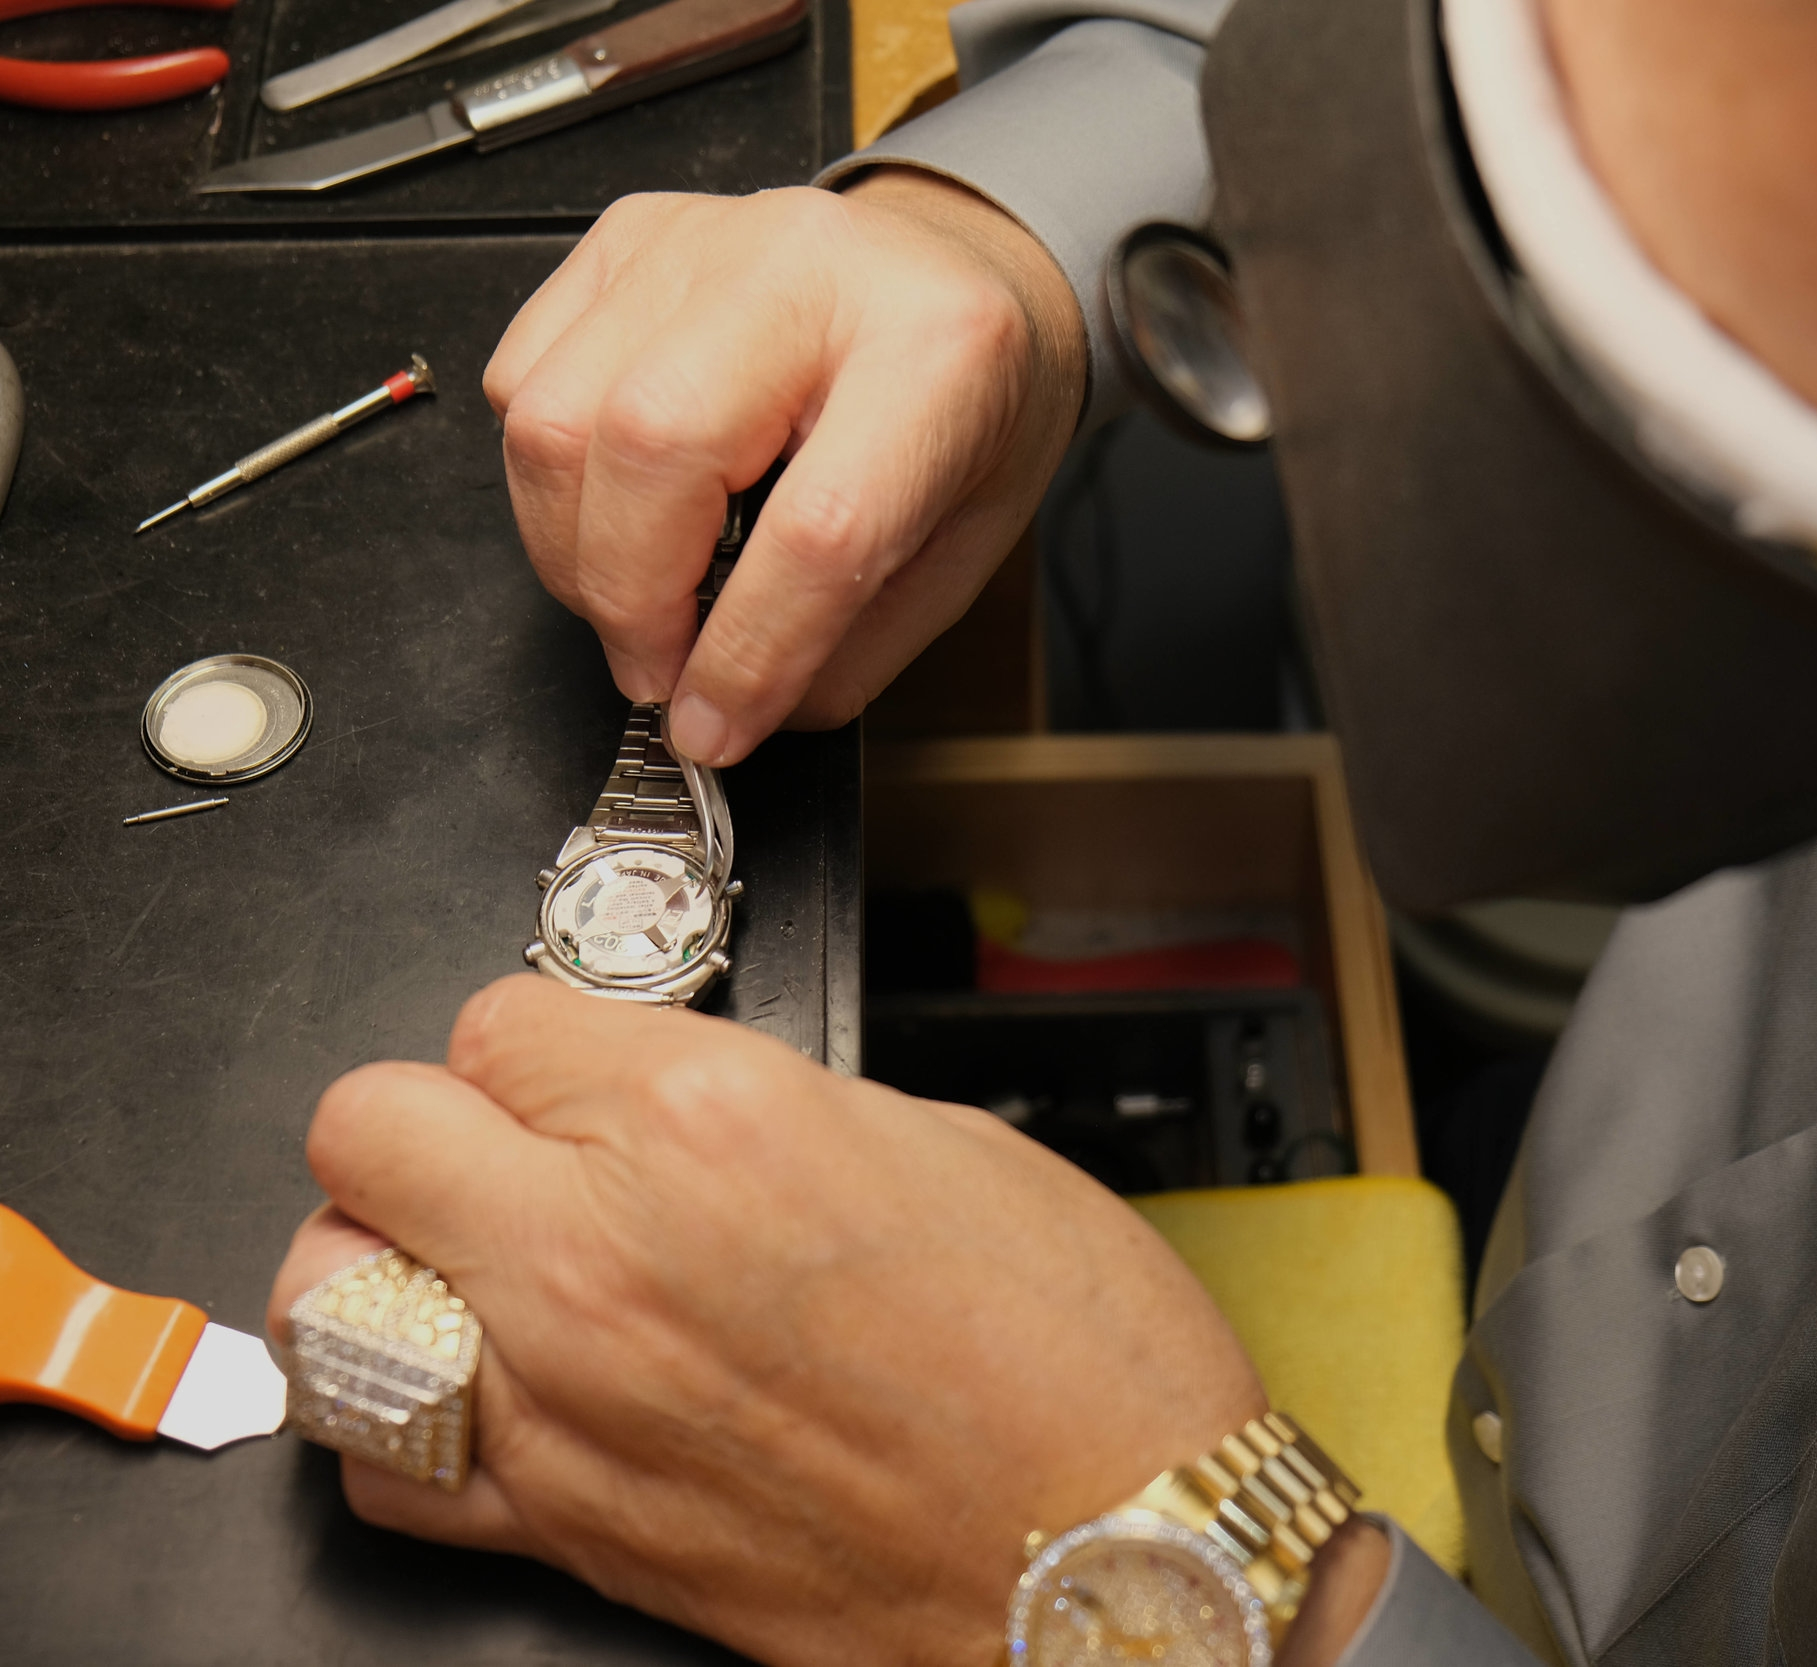 Watch repair - service - batteries - sizing - customizing - There's always someone available for a quick adjustment of your wristband or change of battery. We also have a full watchsmith on premises daily. *customizing includes Bezels, Gold or Silver bracelet custom made, Diamonds added and more